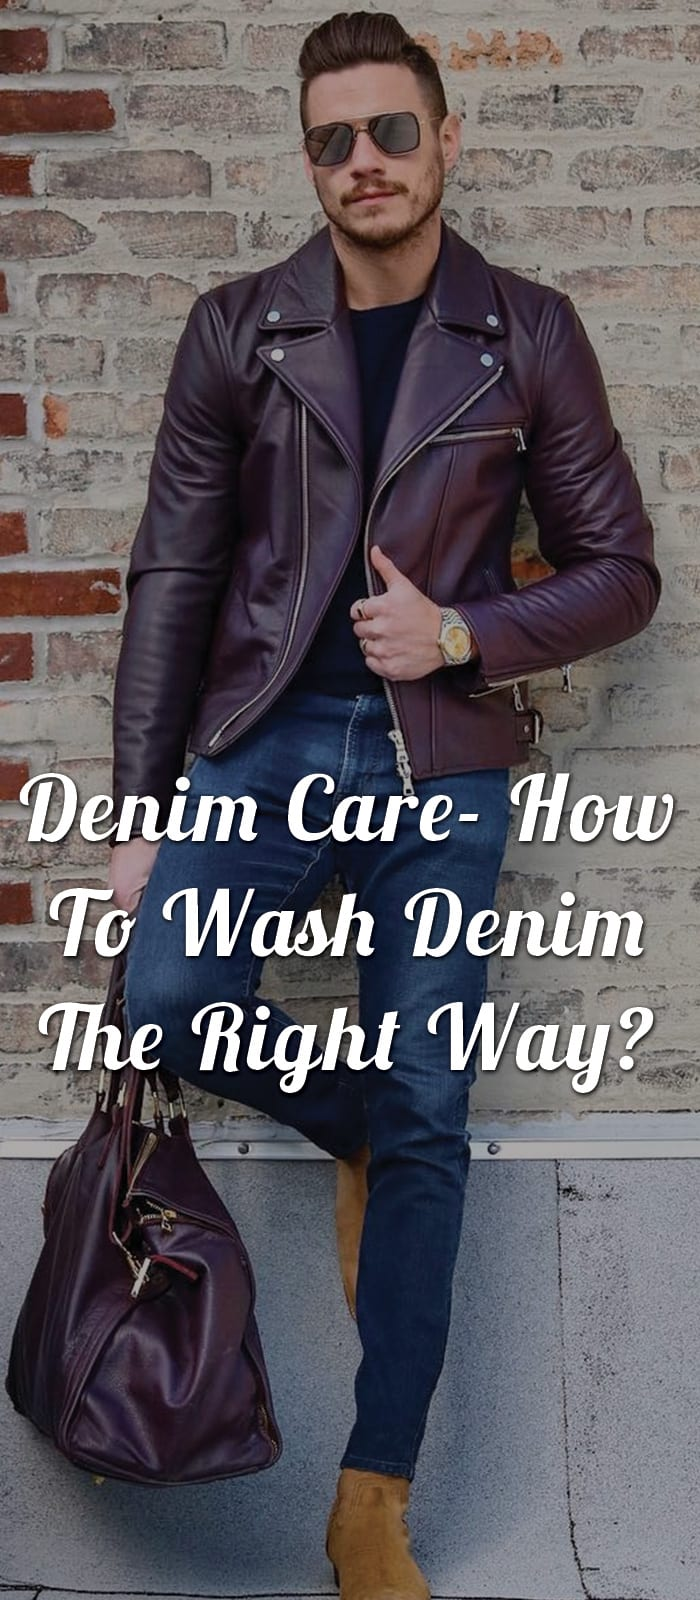 Denim-Care--How-To-Wash-Denim-The-Right-Way